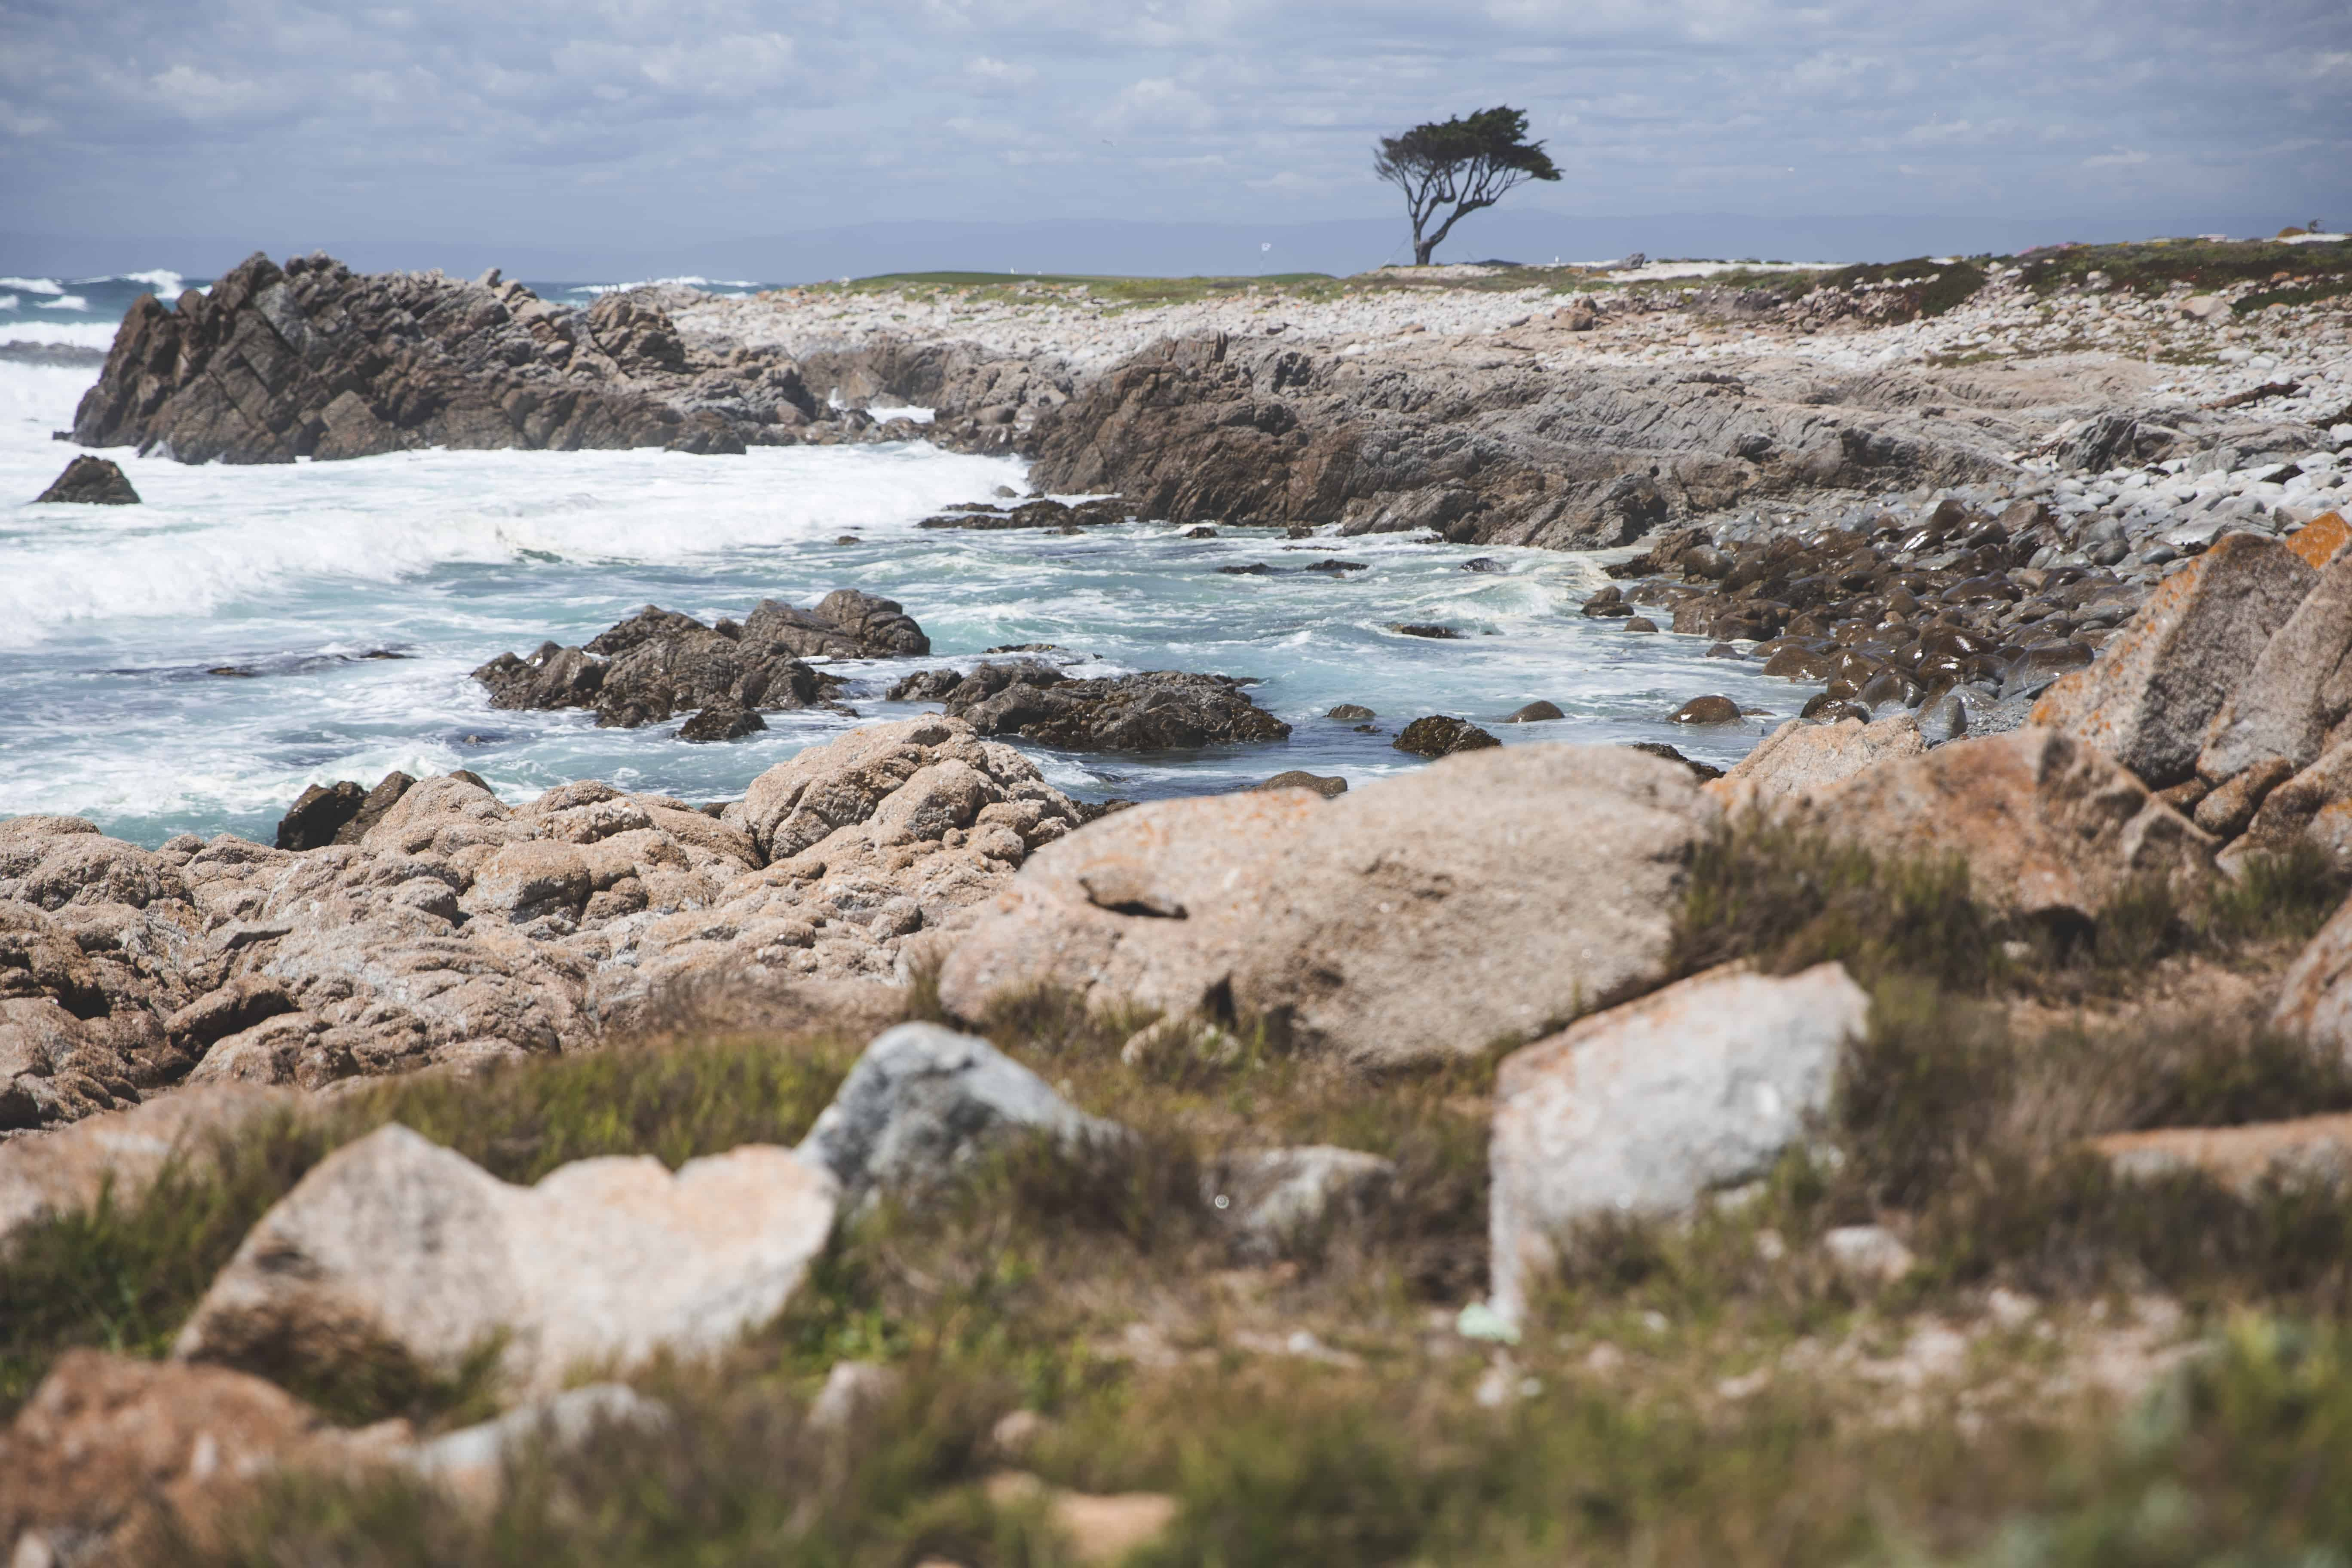 Scenery along the 17-Mile Drive near Monterey, California